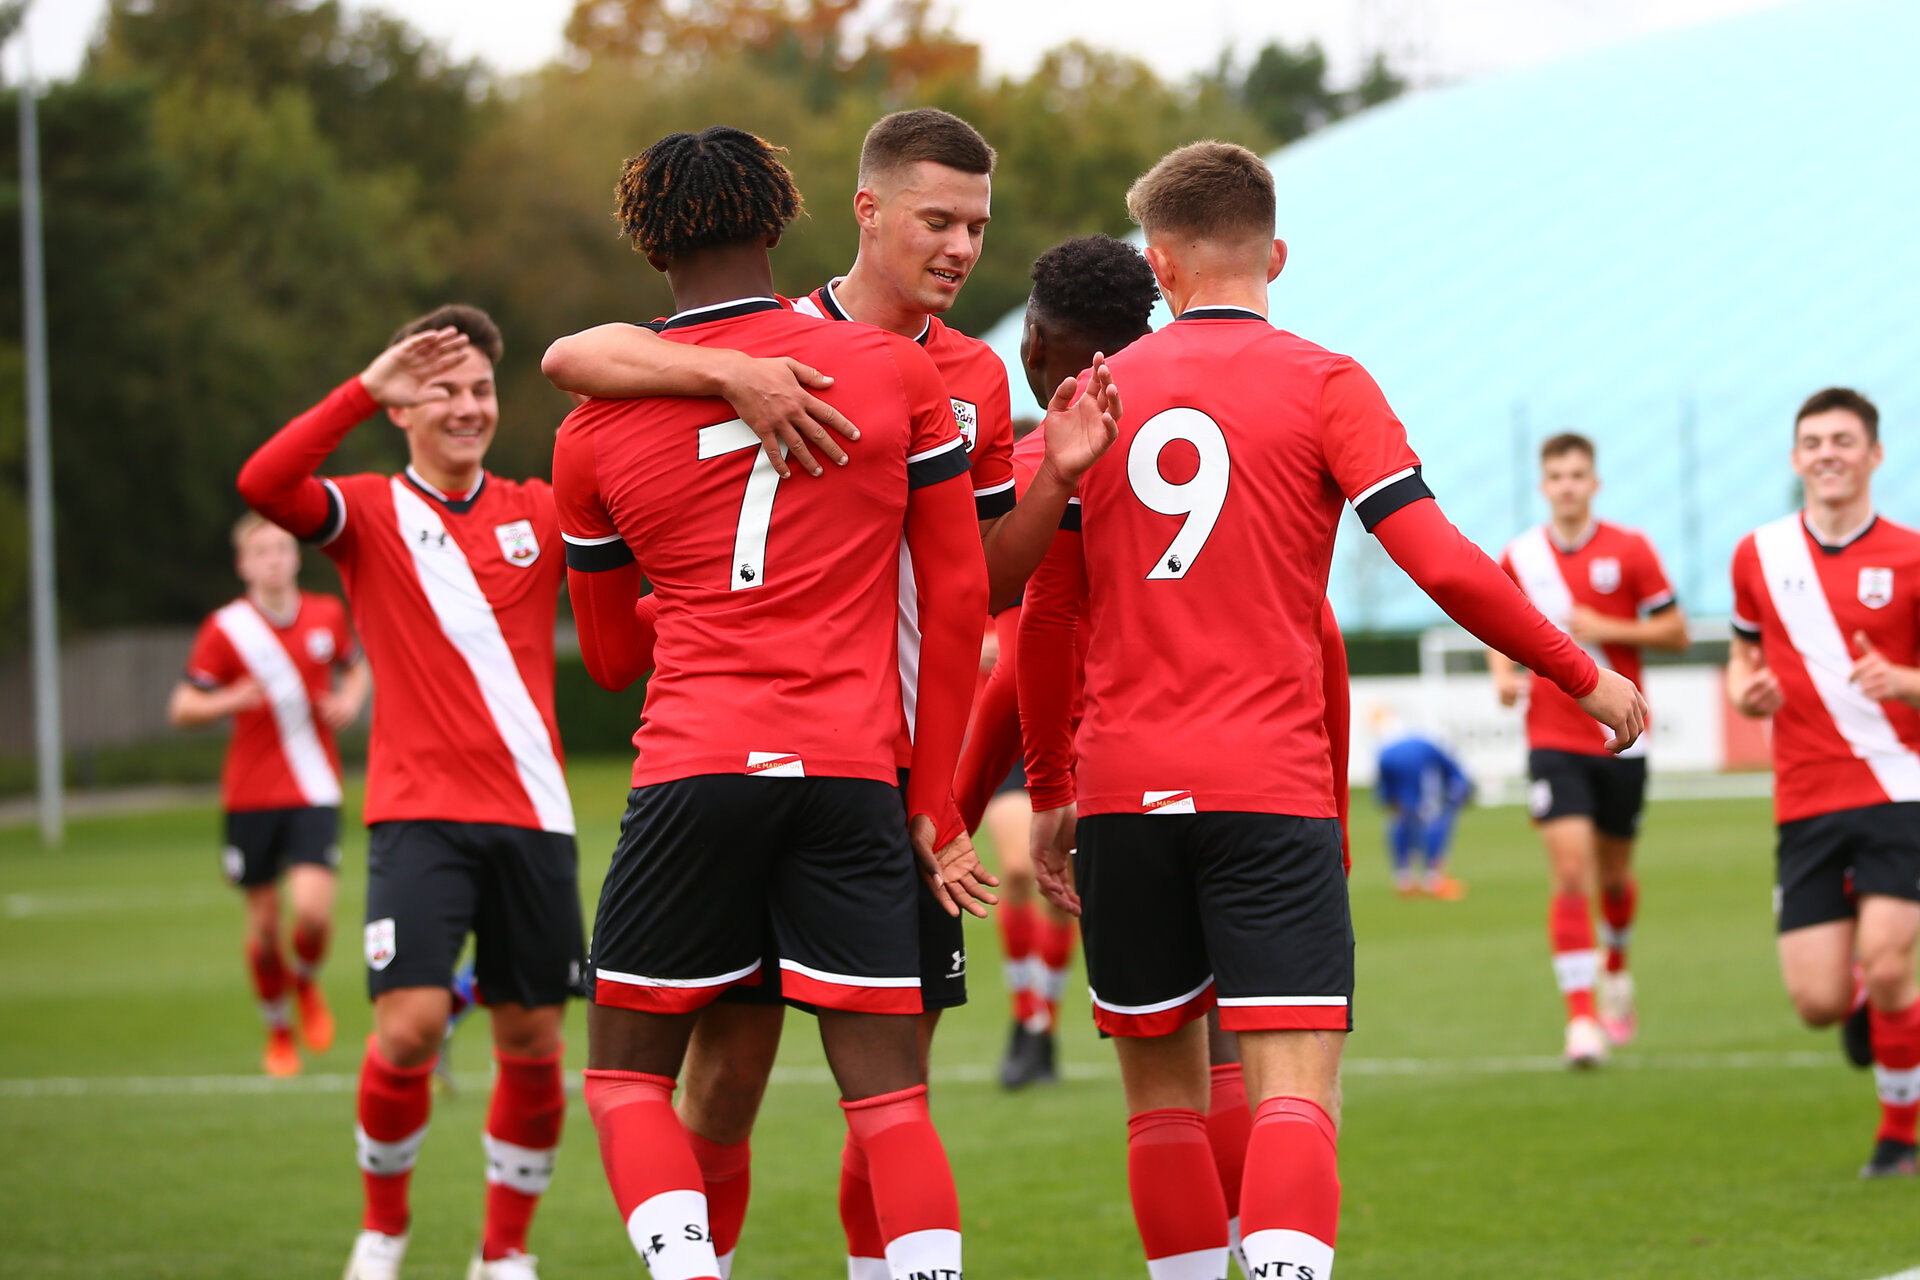 SOUTHAMPTON, ENGLAND - OCTOBER 17: Southampton players celebrate Kazeem Olaigbe goal  during the Premier League U18 match between Southampton U18 and Leicester City at Staplewood Training Ground on October 17, 2020 in London, United Kingdom. (Photo by Isabelle Field/Southampton FC via Getty Images)